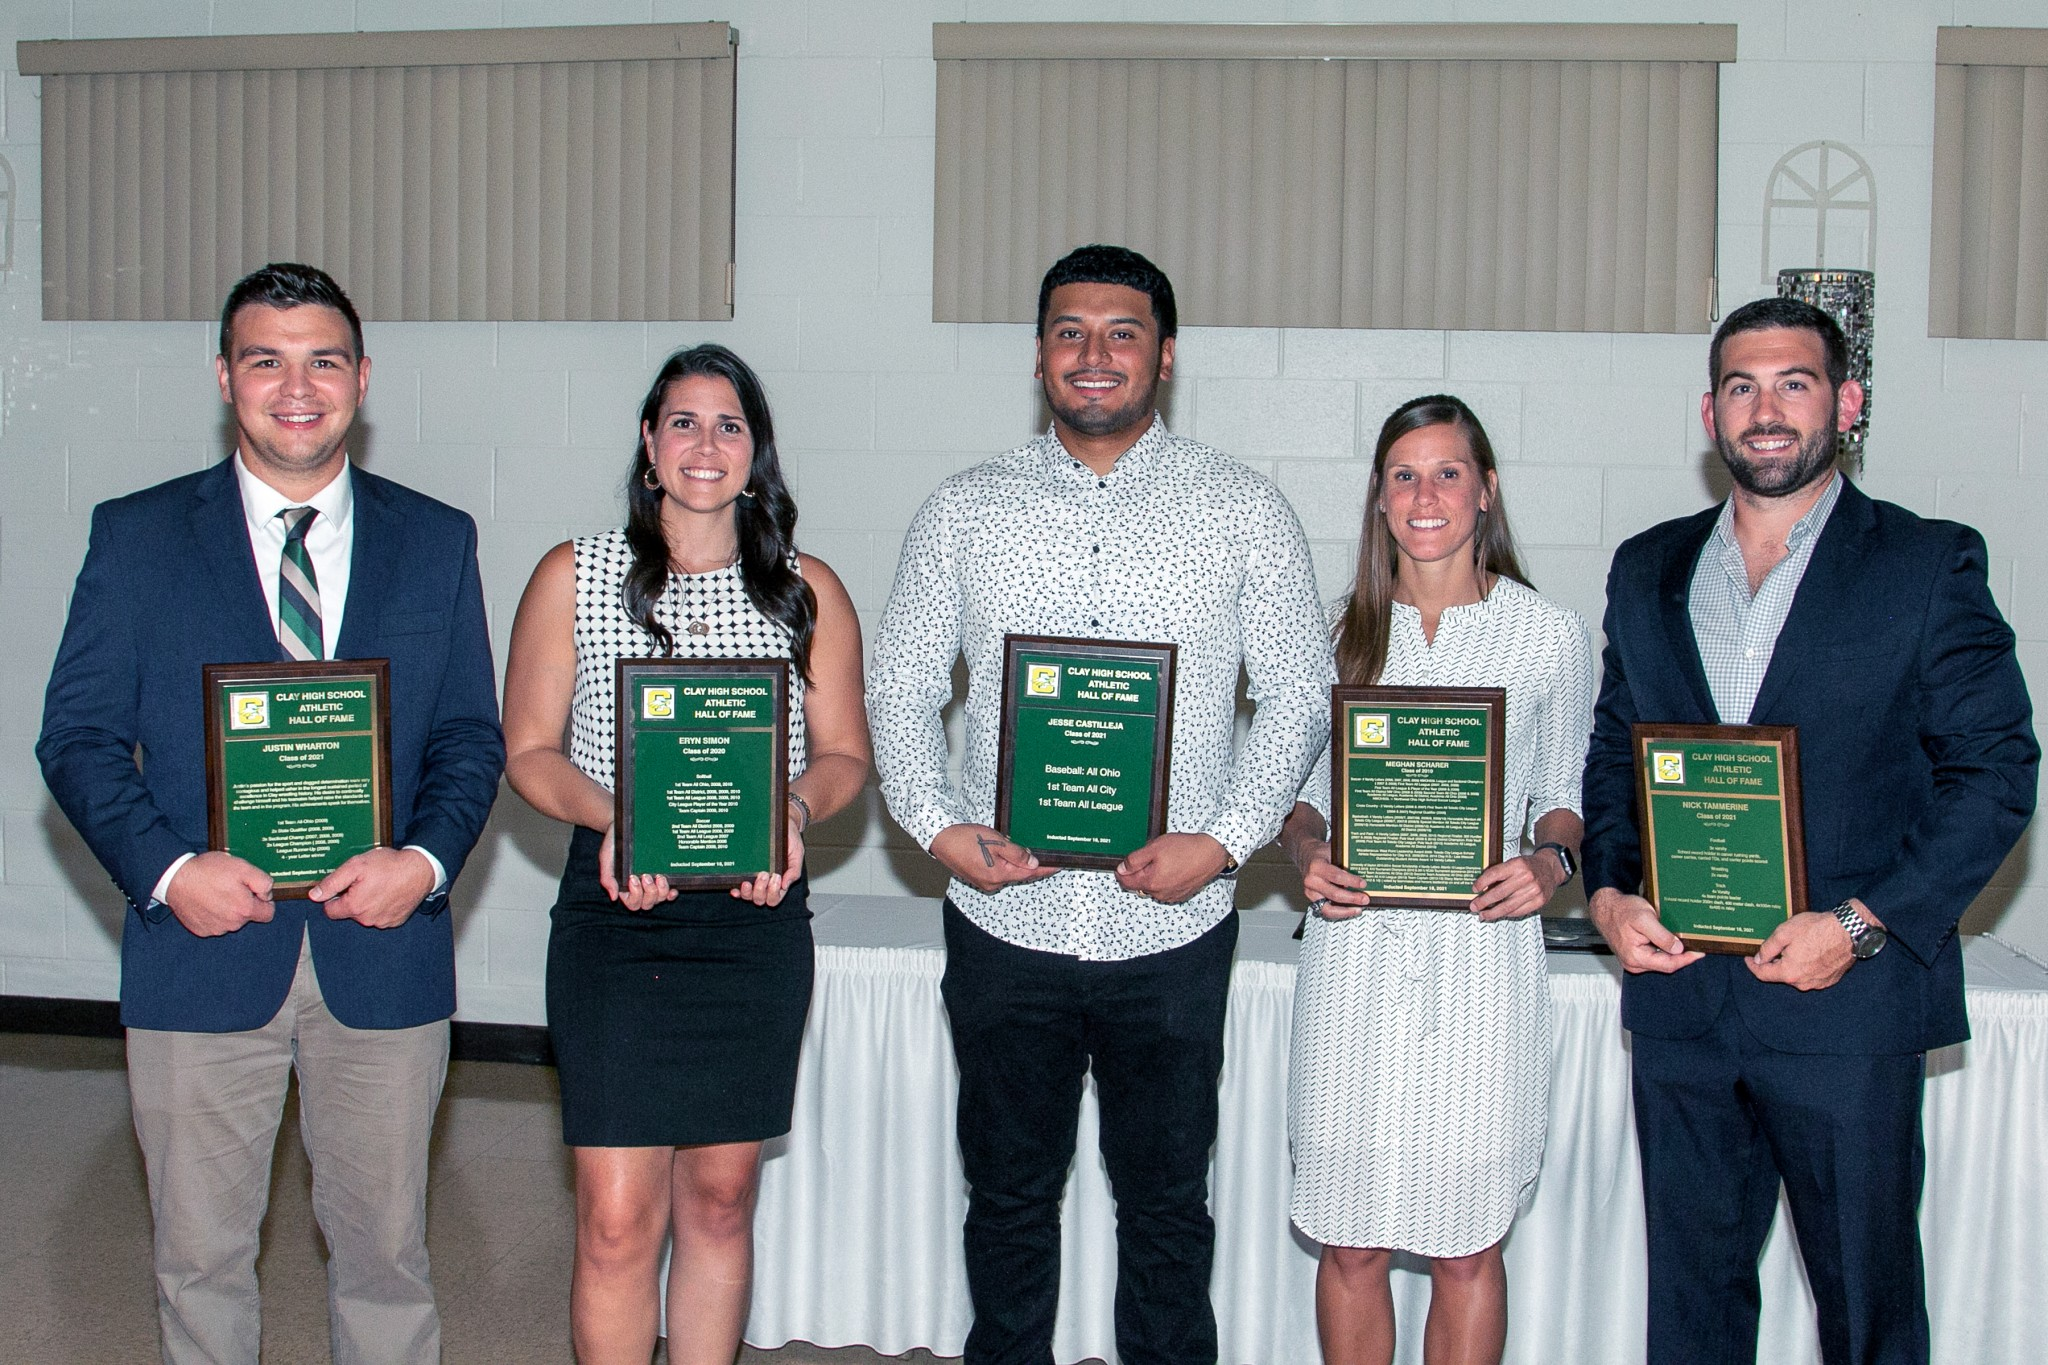 Clay Athletic Hall of Fame inductees (left to right) Justin Wharton, Eryn Simon, Jesse Castilleja, Meghan Scharer and Nick Tammerine. (Photo by Amy Hansen)